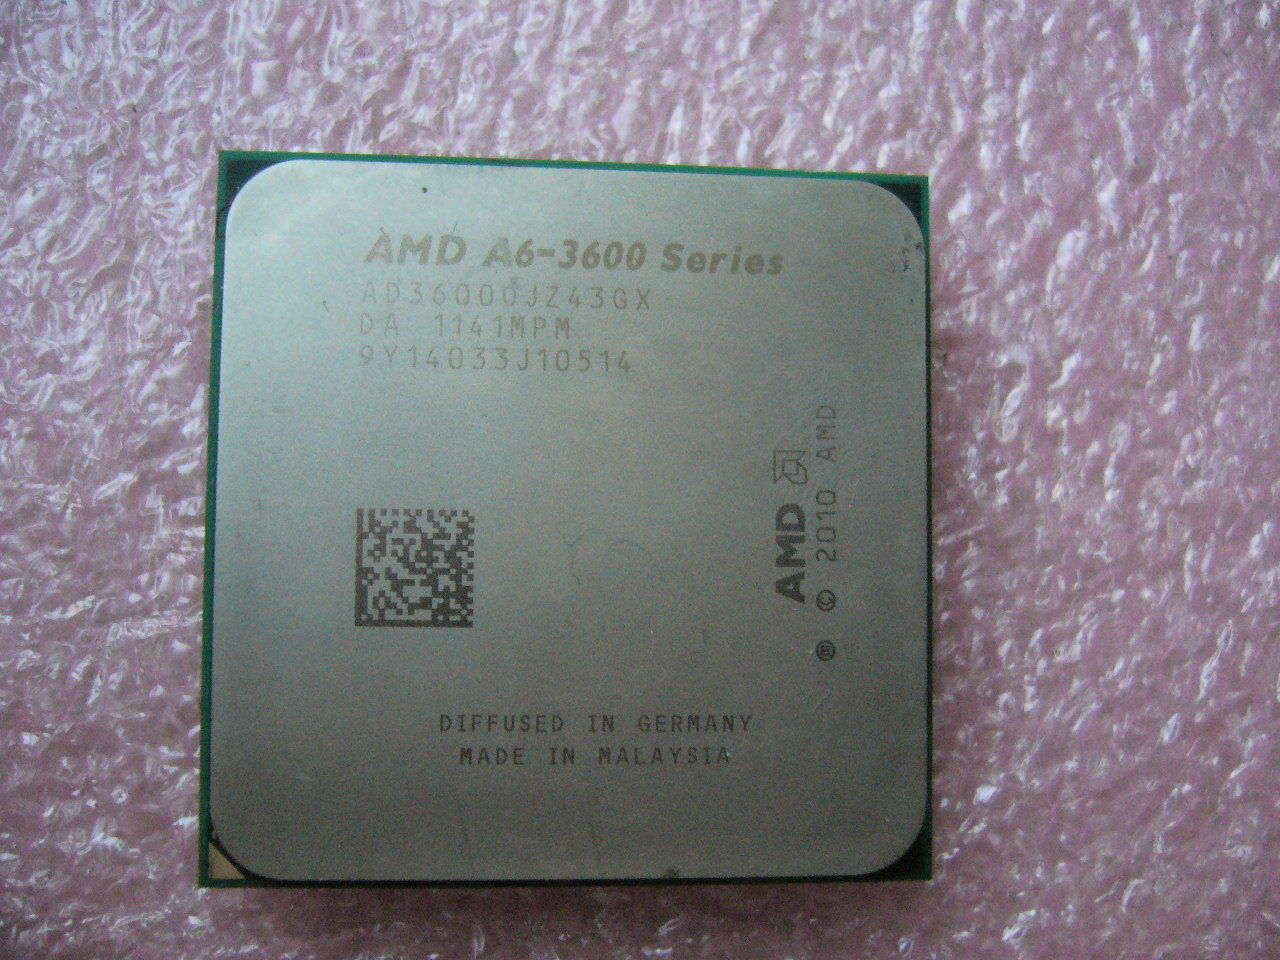 QTY 1x AMD A6-3600 2.1 GHz Quad-Core (AD3600OJZ43GX) CPU Socket FM1 NOT WORKING